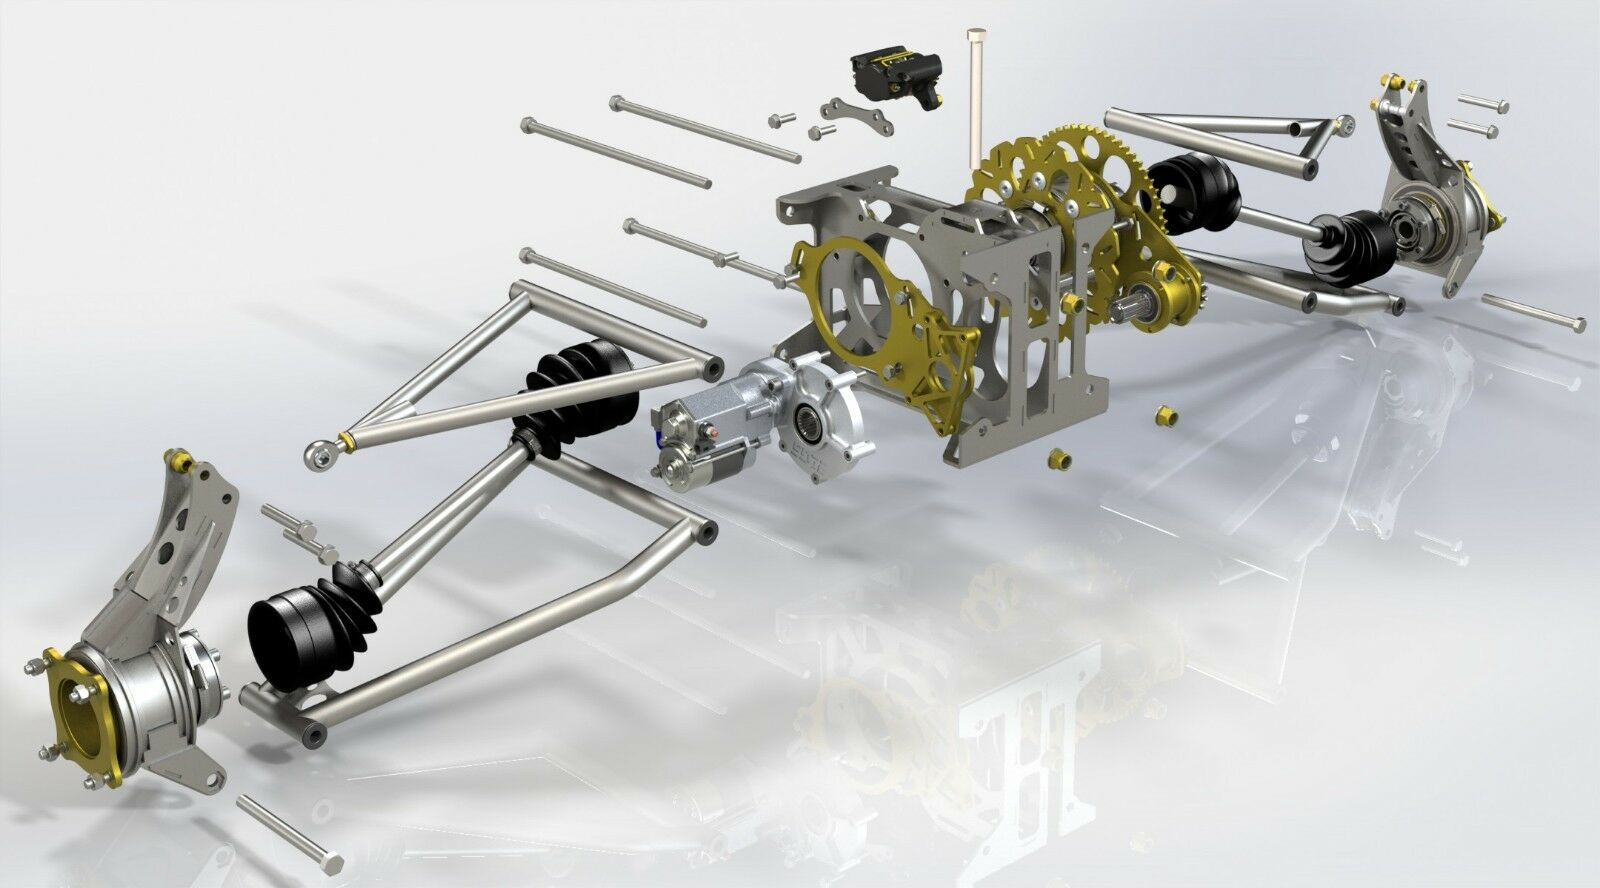 S1 Rear Suspension Plans Bike Powered Mini Dune Buggy